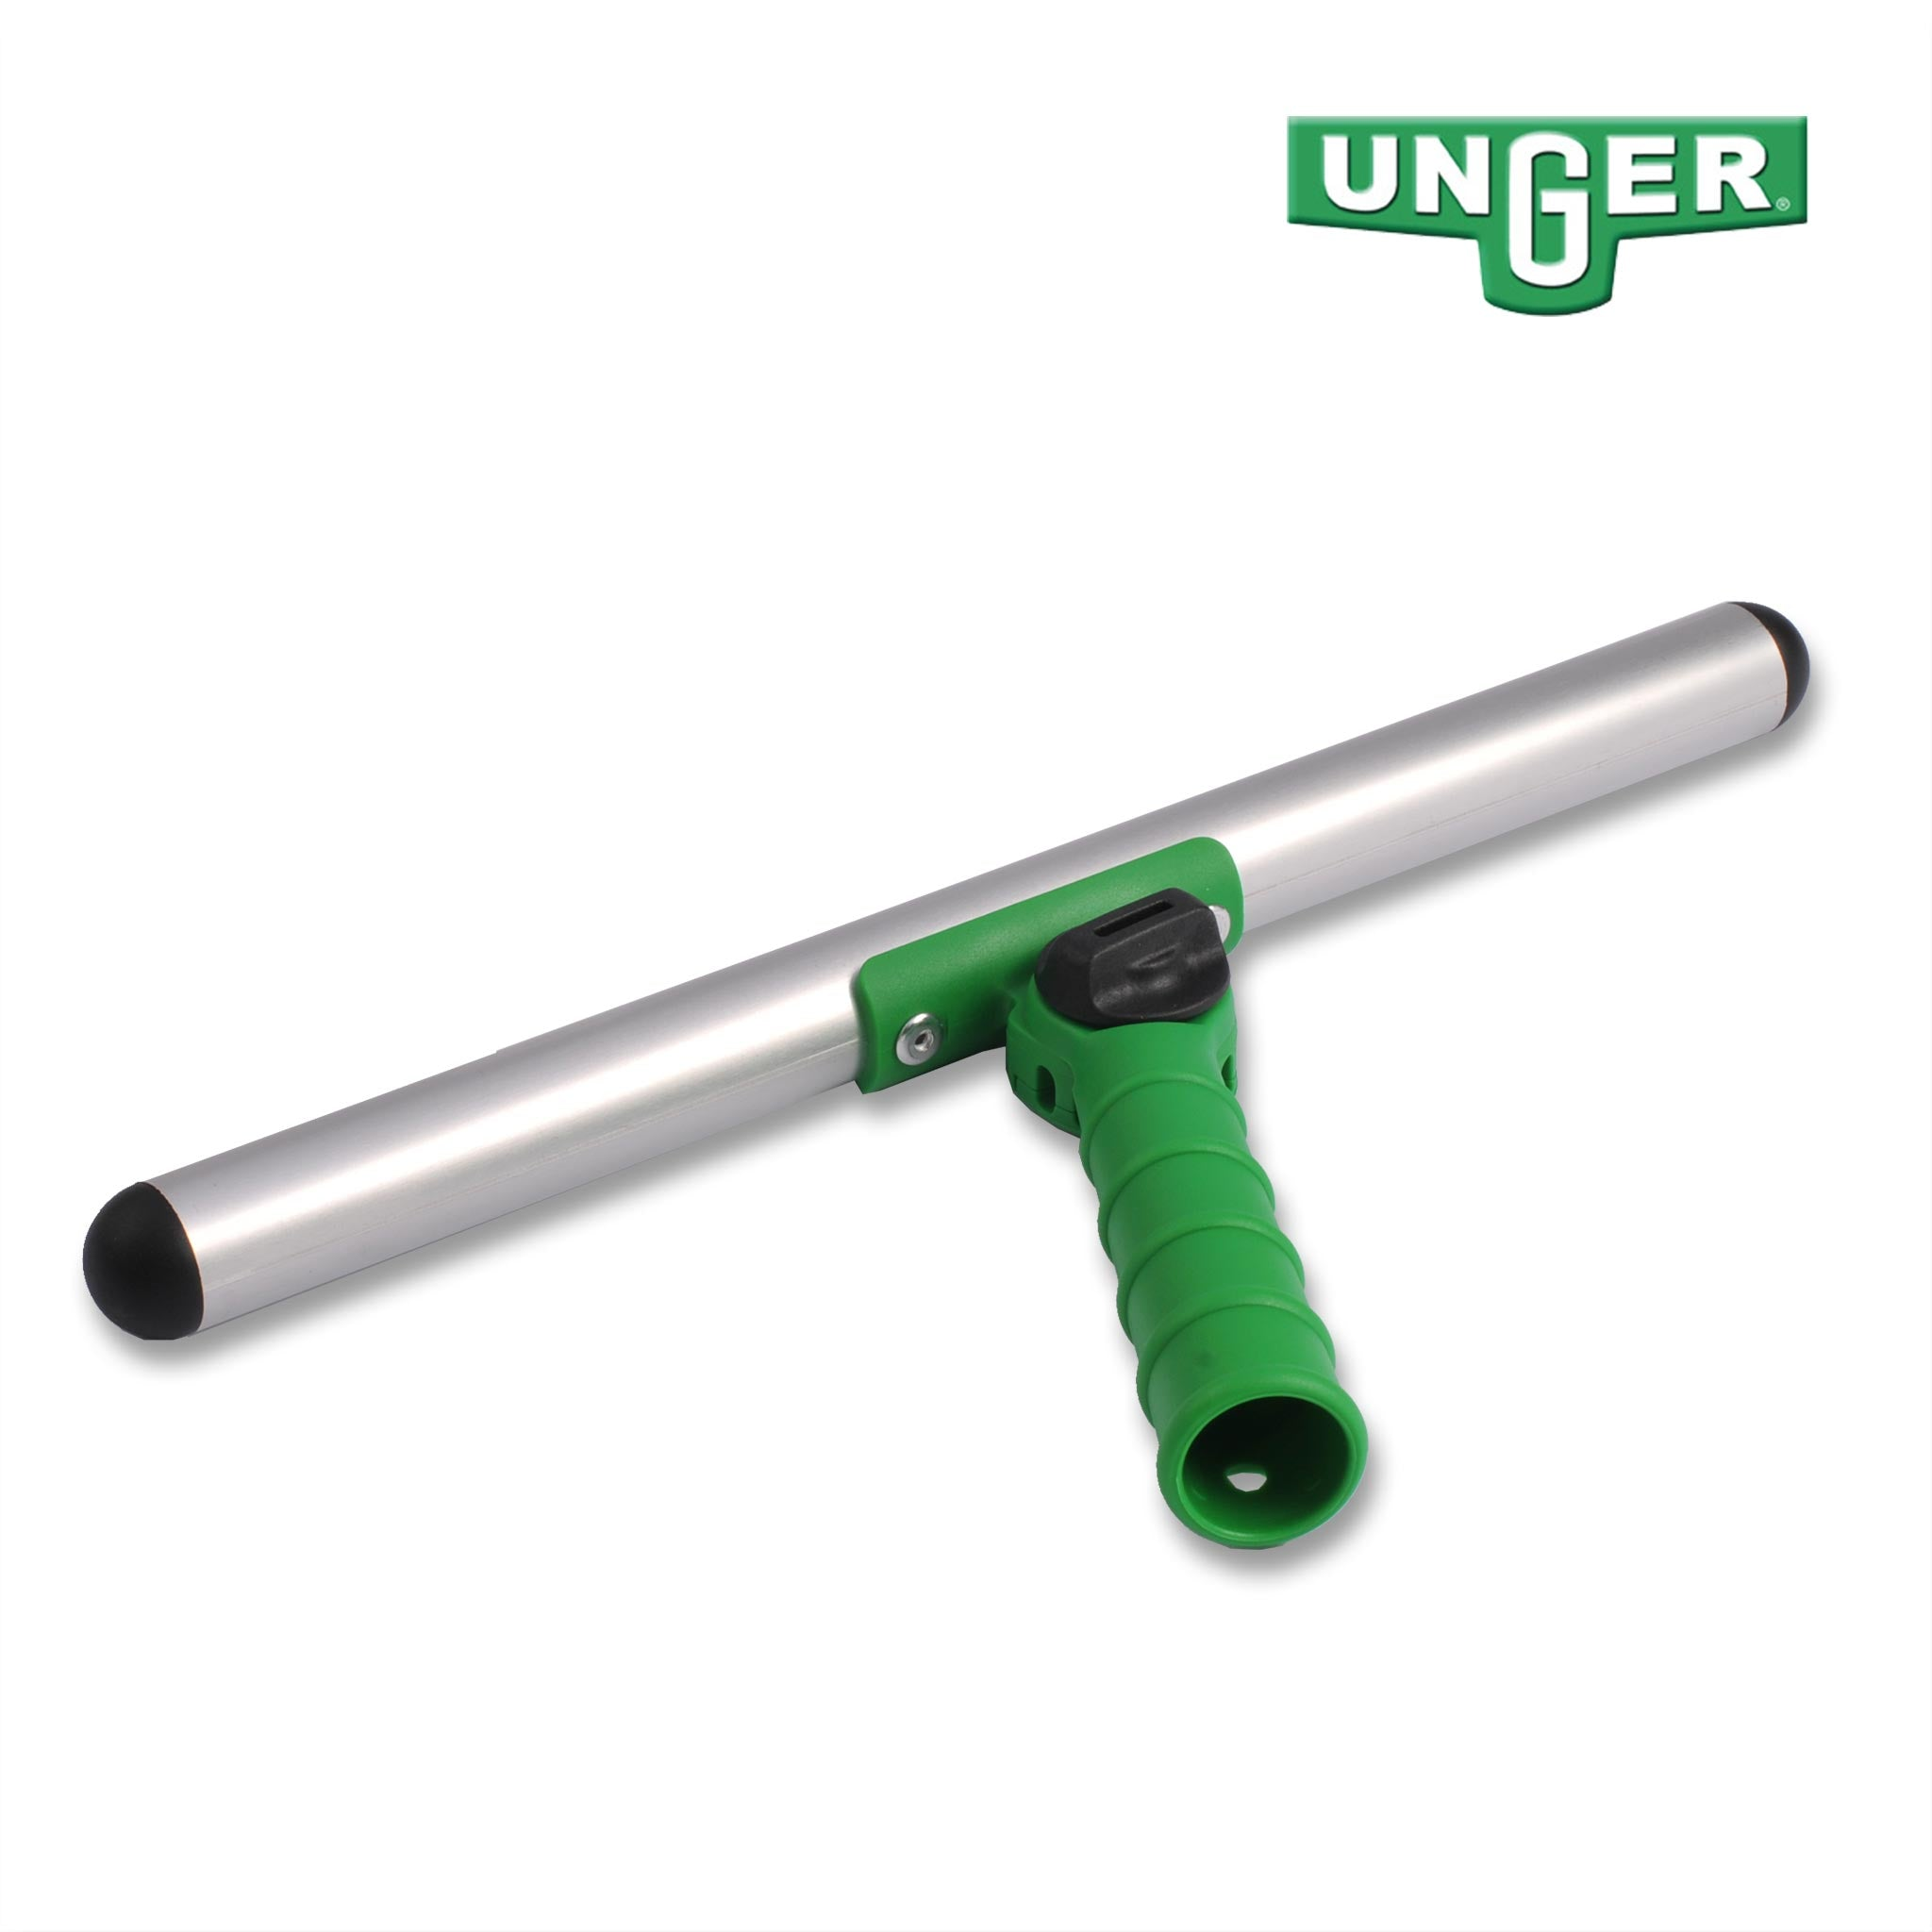 Unger Swivel T Bar Applicator Frame